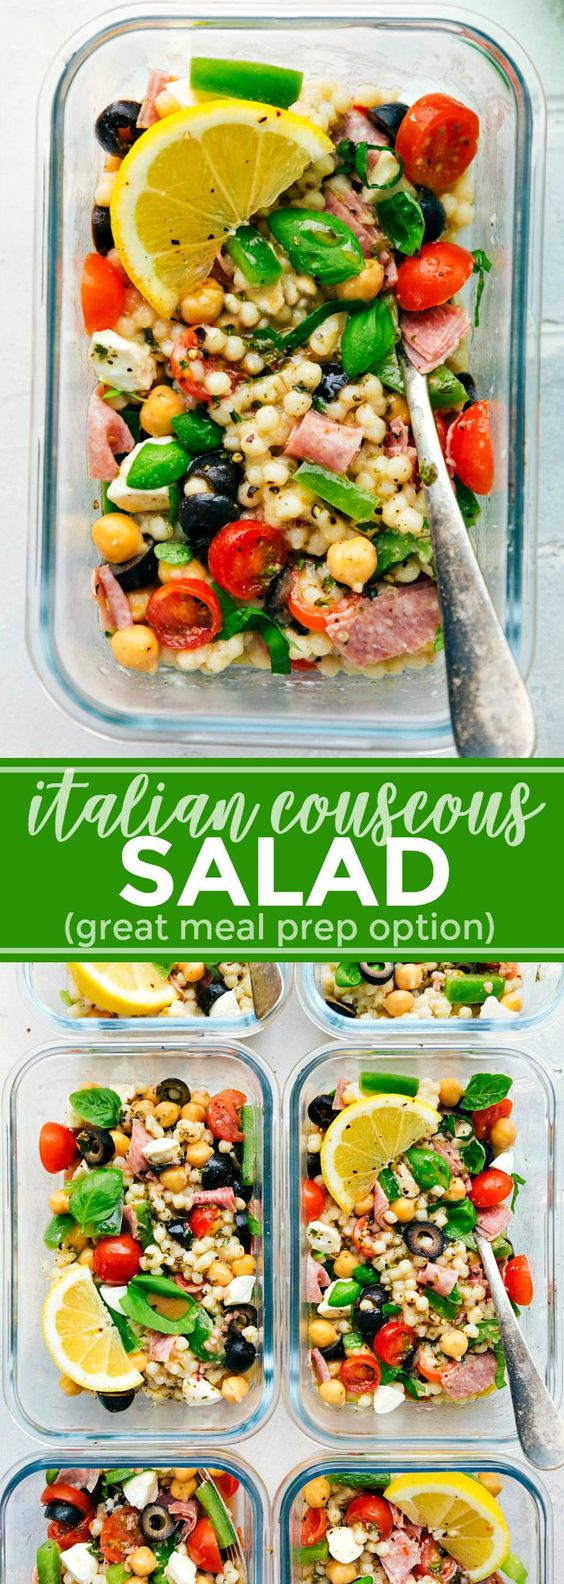 Meal Prep Italian Couscous Salad by Chelsea's Messy Apron